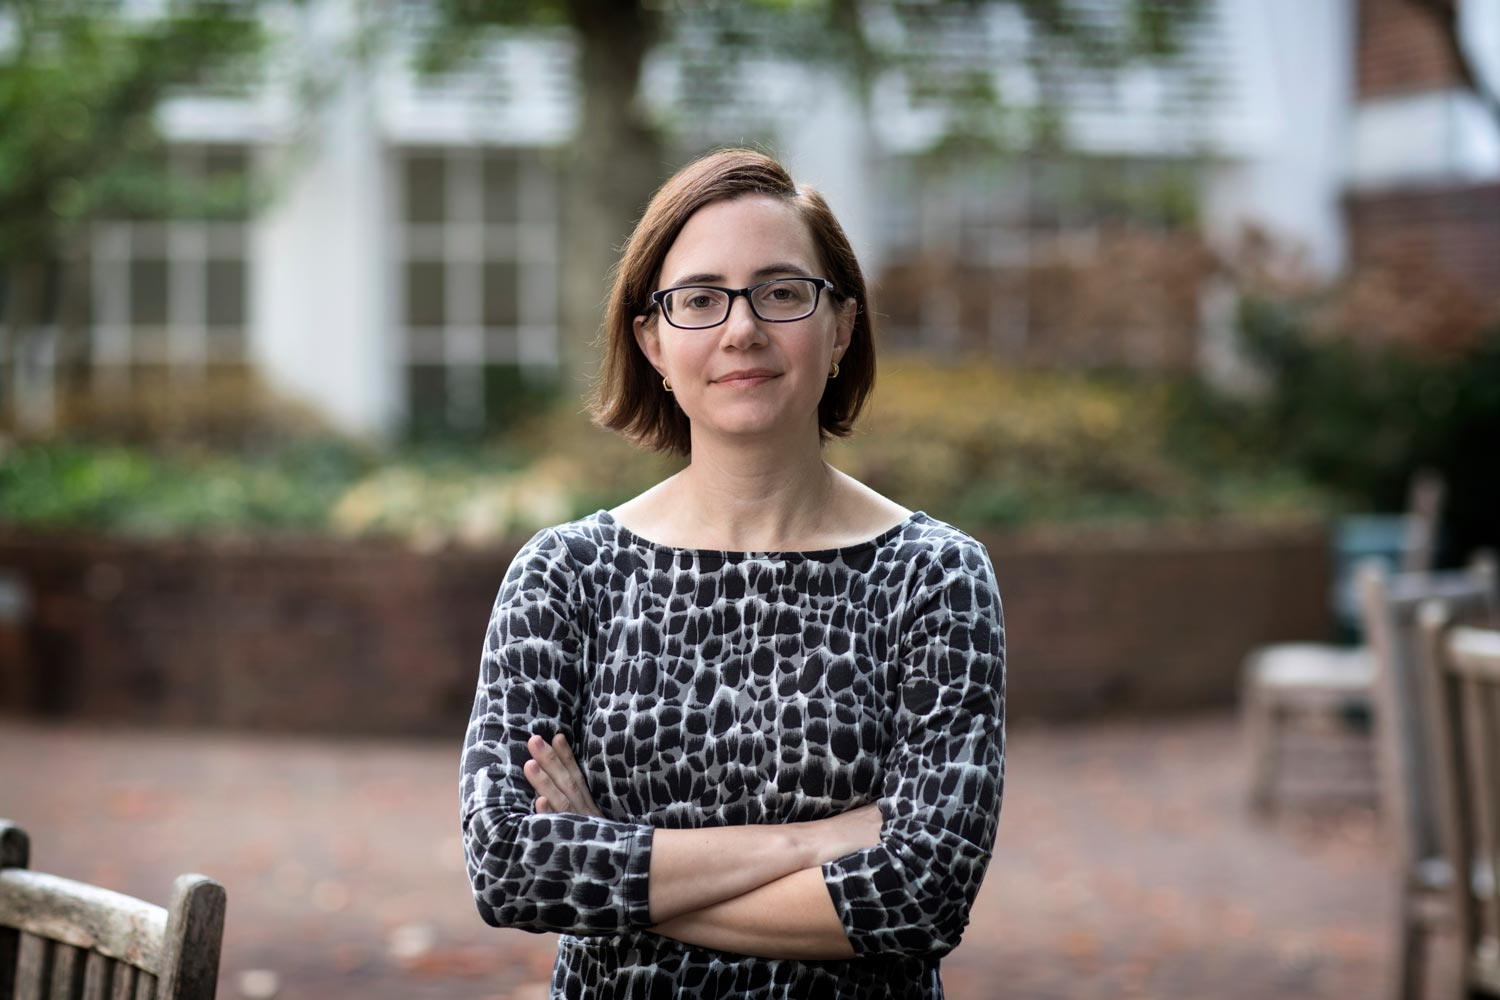 Amalia Miller is a professor in UVA's economics department, specializing in labor economics, health economics, public finance and industrial organization.